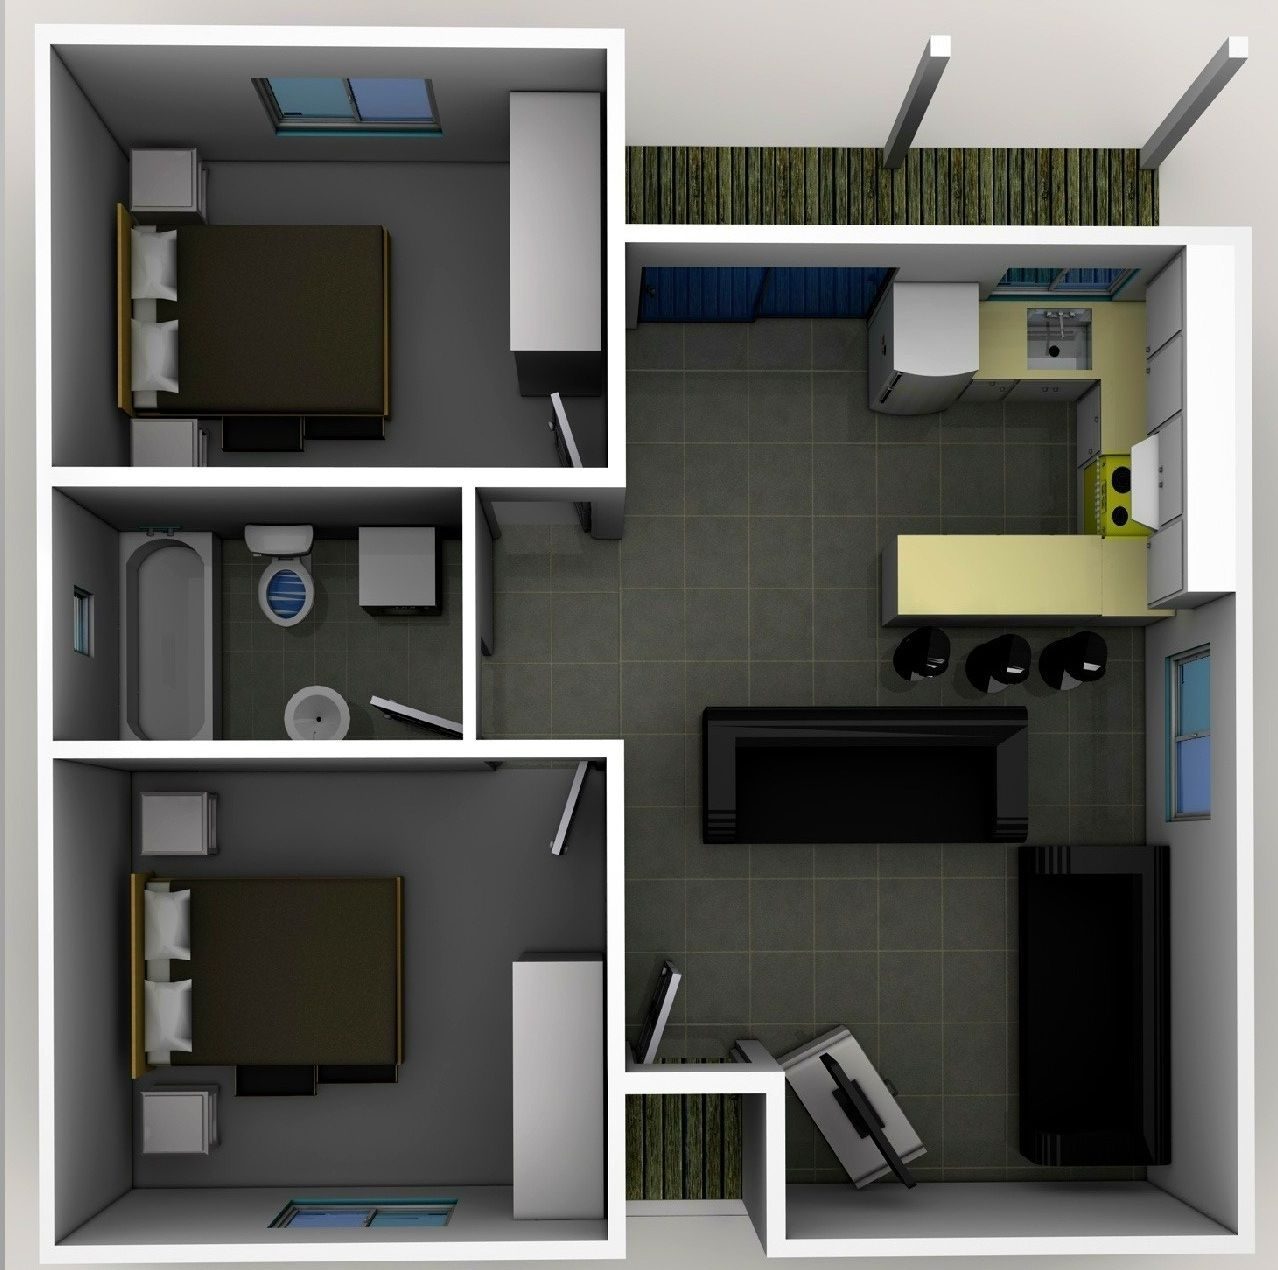 Garage Conversion To Granny Flat - Google Search